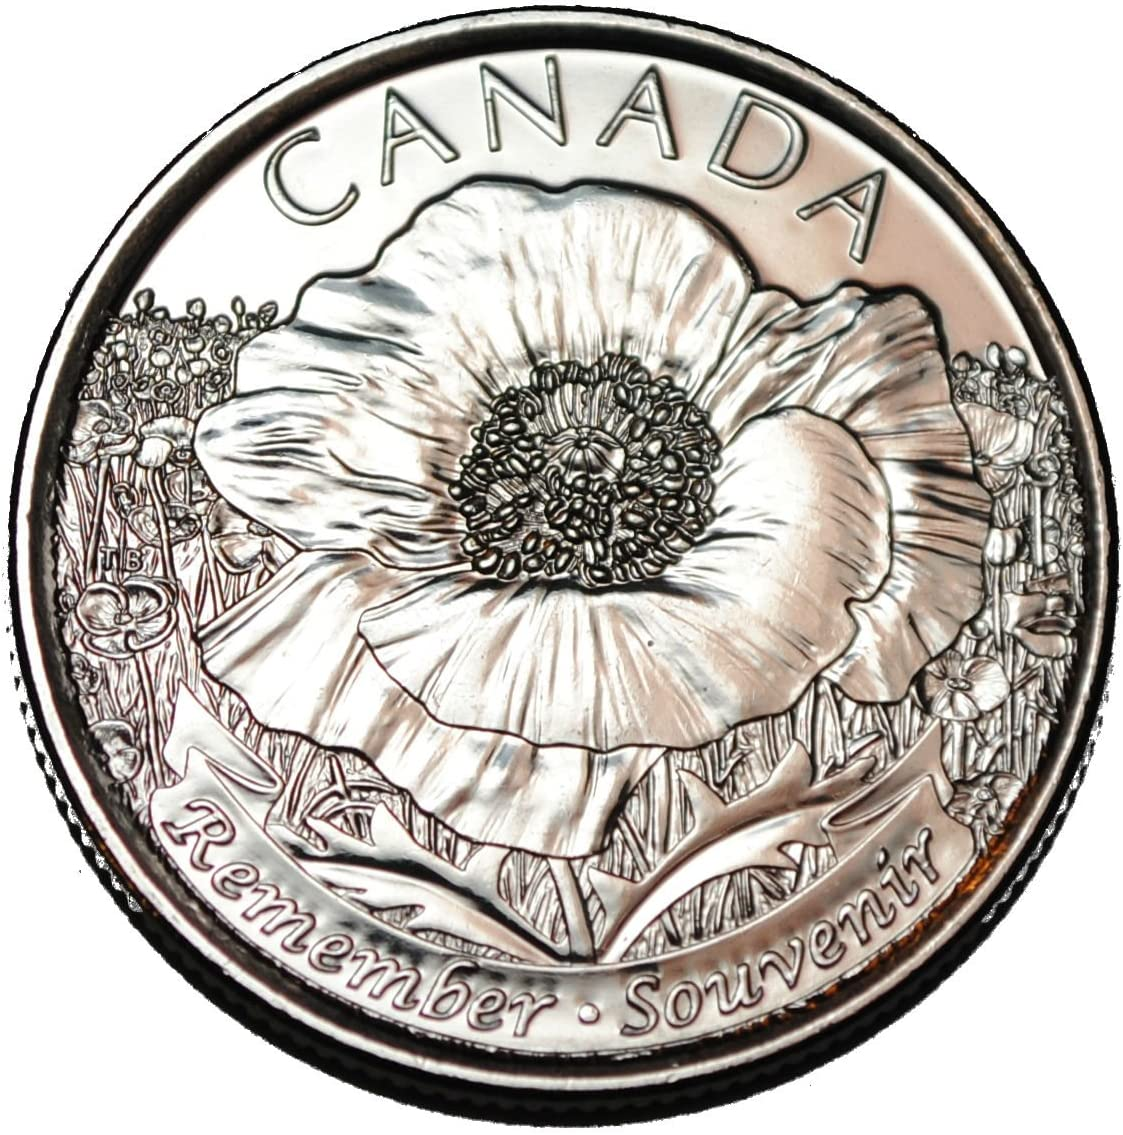 2015 CANADA 25 Cent Coin from Mint Roll UNC